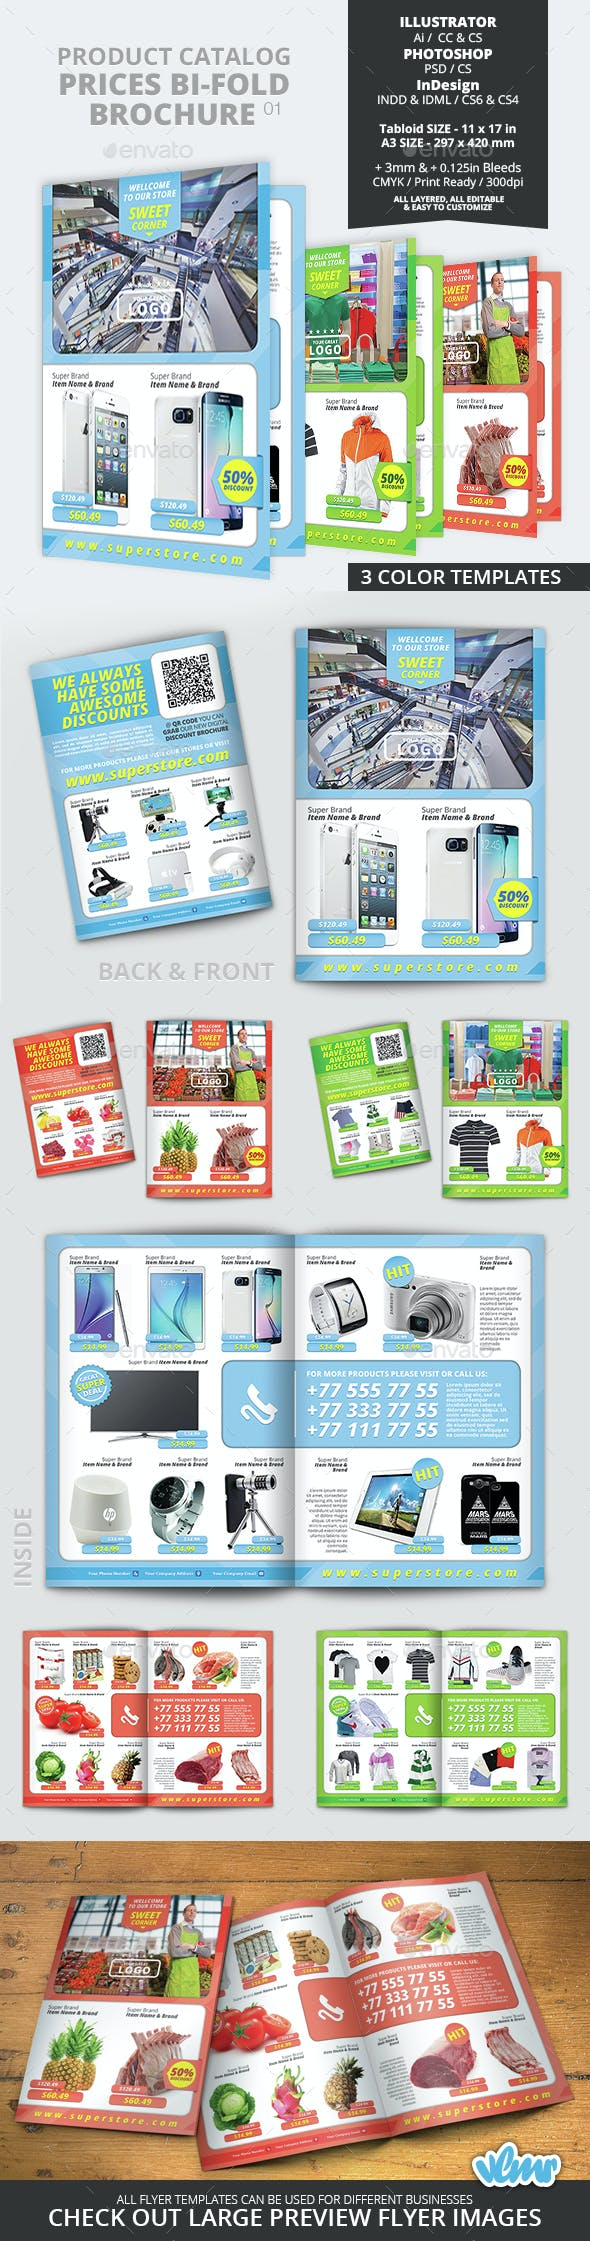 product catalog prices bi fold brochure 01 by vlmr graphicriver